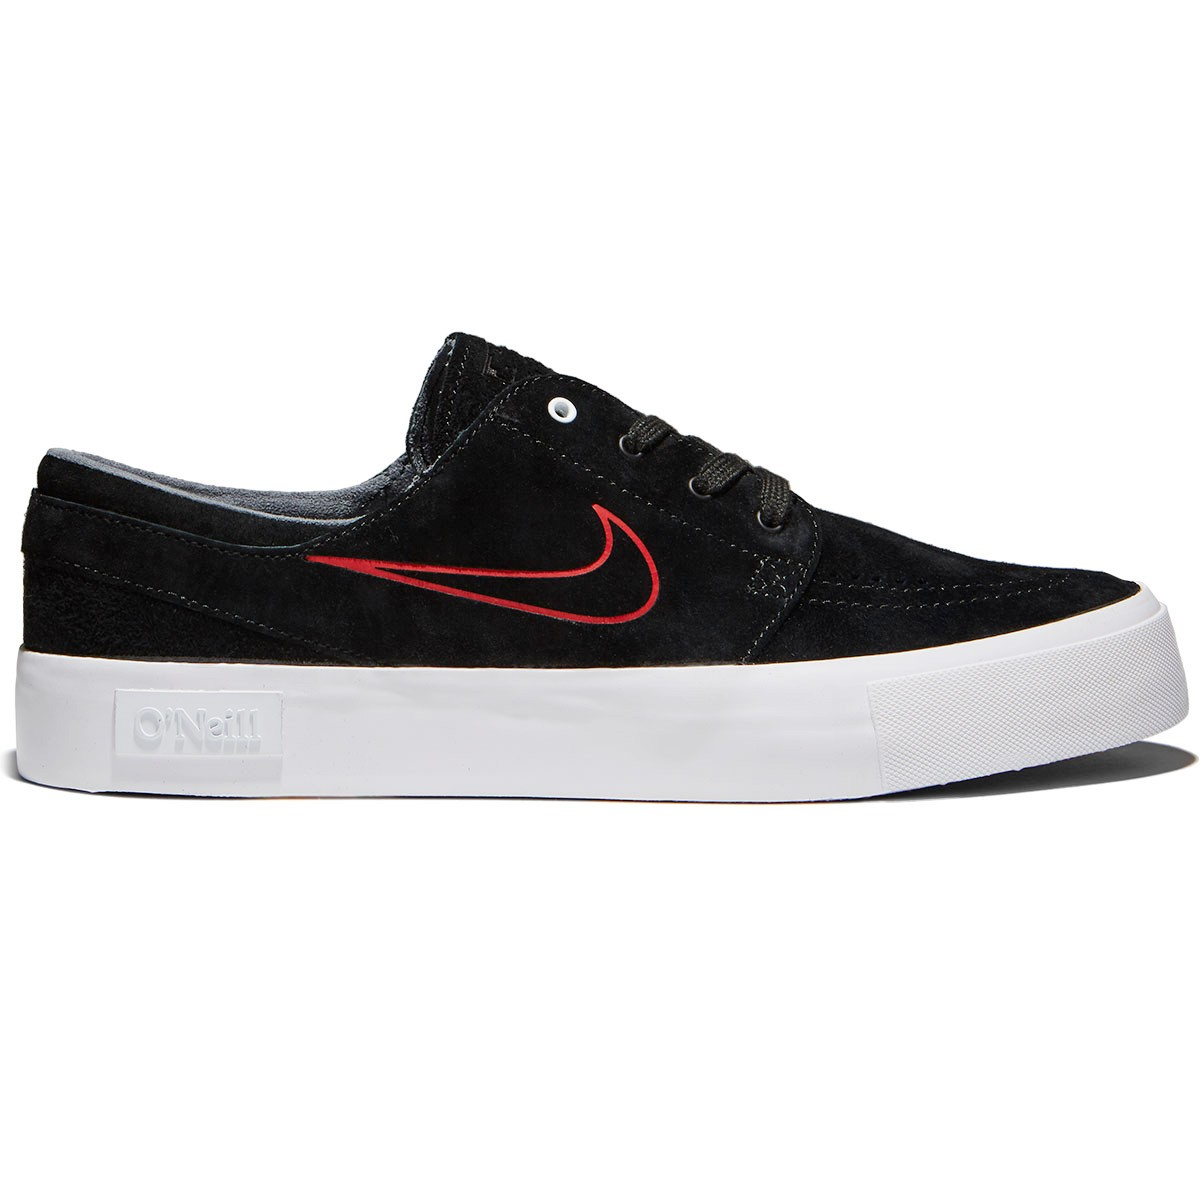 9a4a926212f2 Nike SB Zoom Stefan Janoski HT Shane O Neill Shoes - Black Red